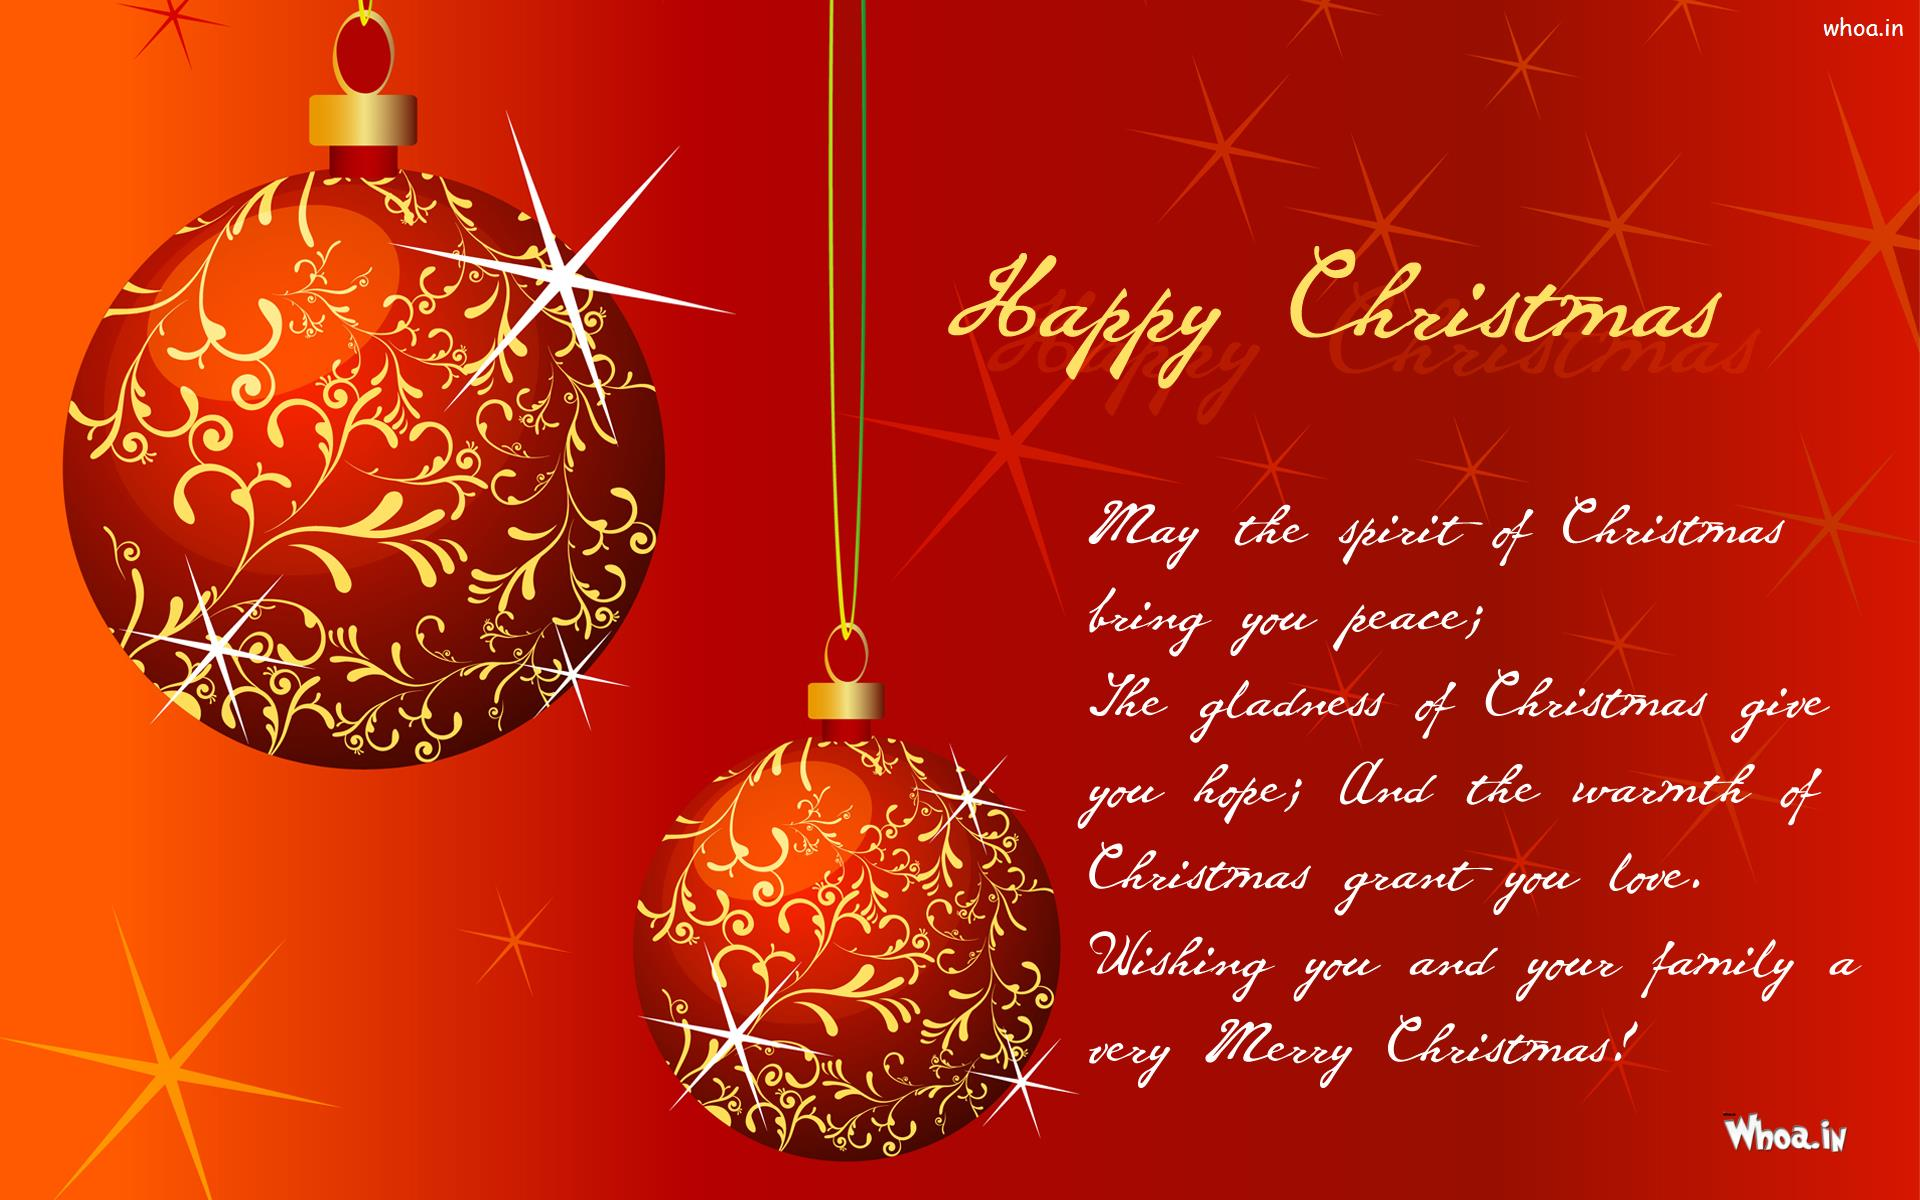 Happy Christmas Quotes Hd Wallpaper